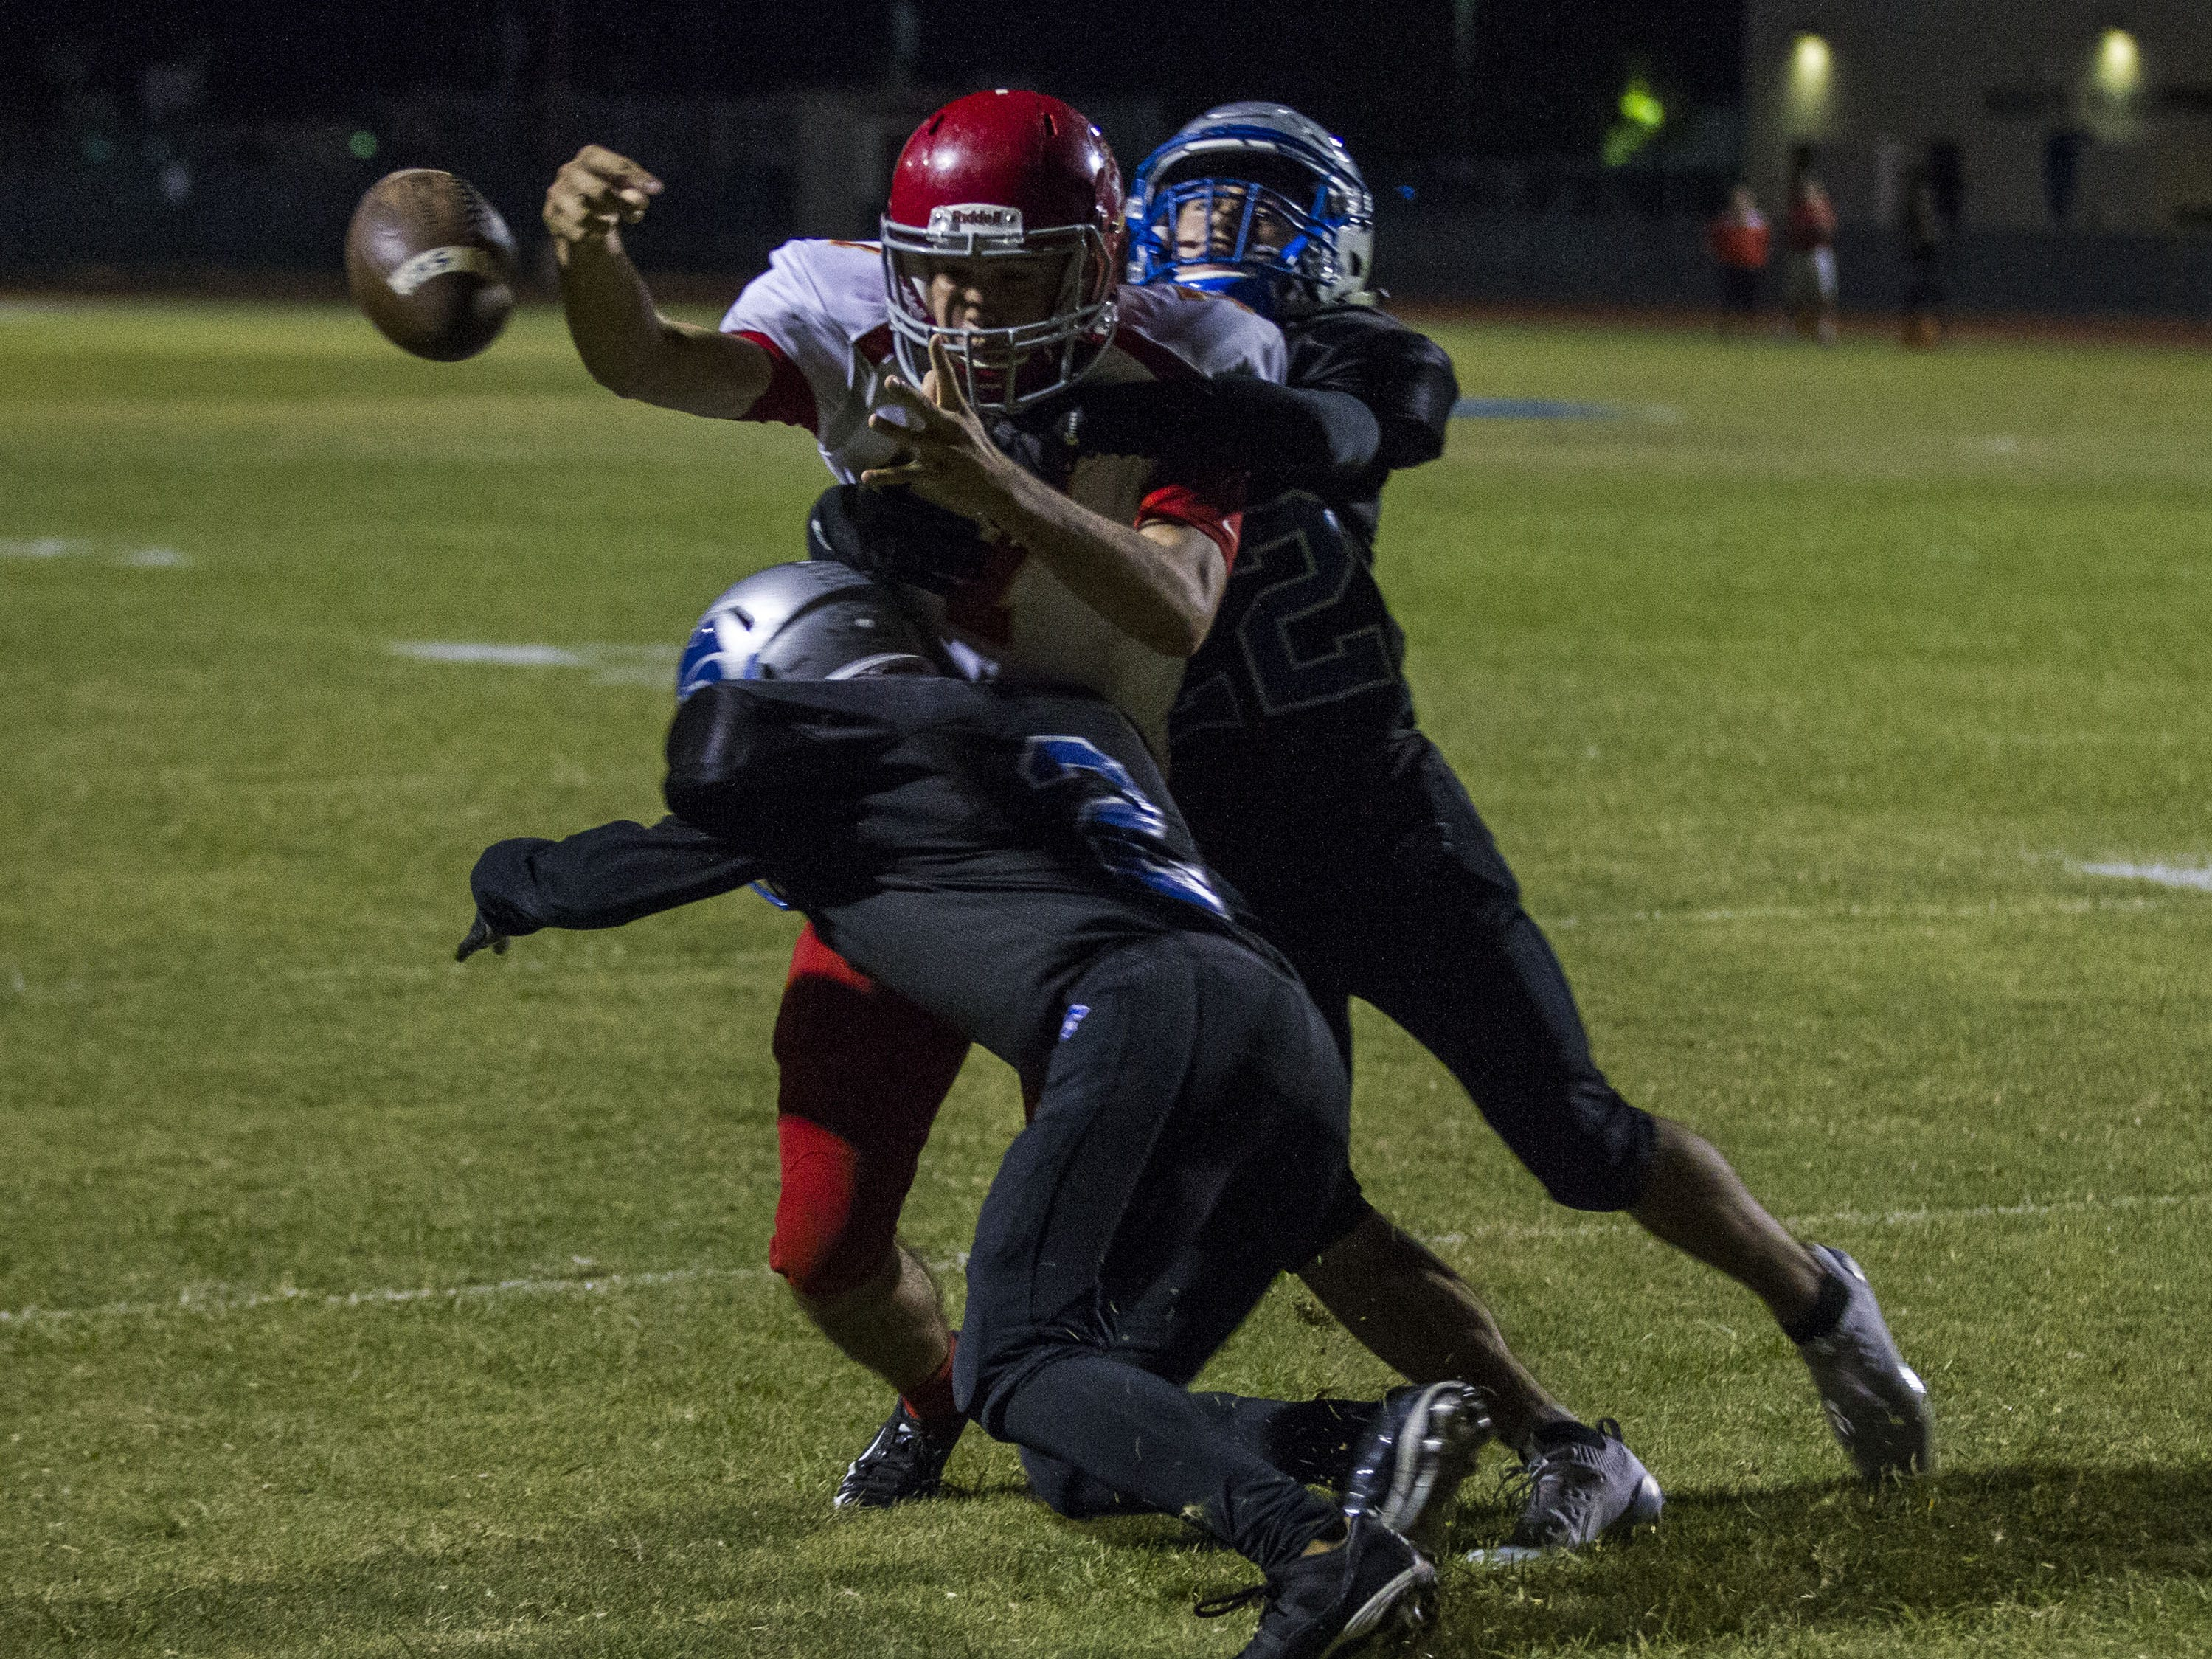 Seton quarterback Vincent Wallace loses the ball after getting sandwiched by Mesquite's Ramon Corella(2) and Chris Hintze (22) during their game in Gilbert Friday, Sept. 21, 2018. #azhsfb